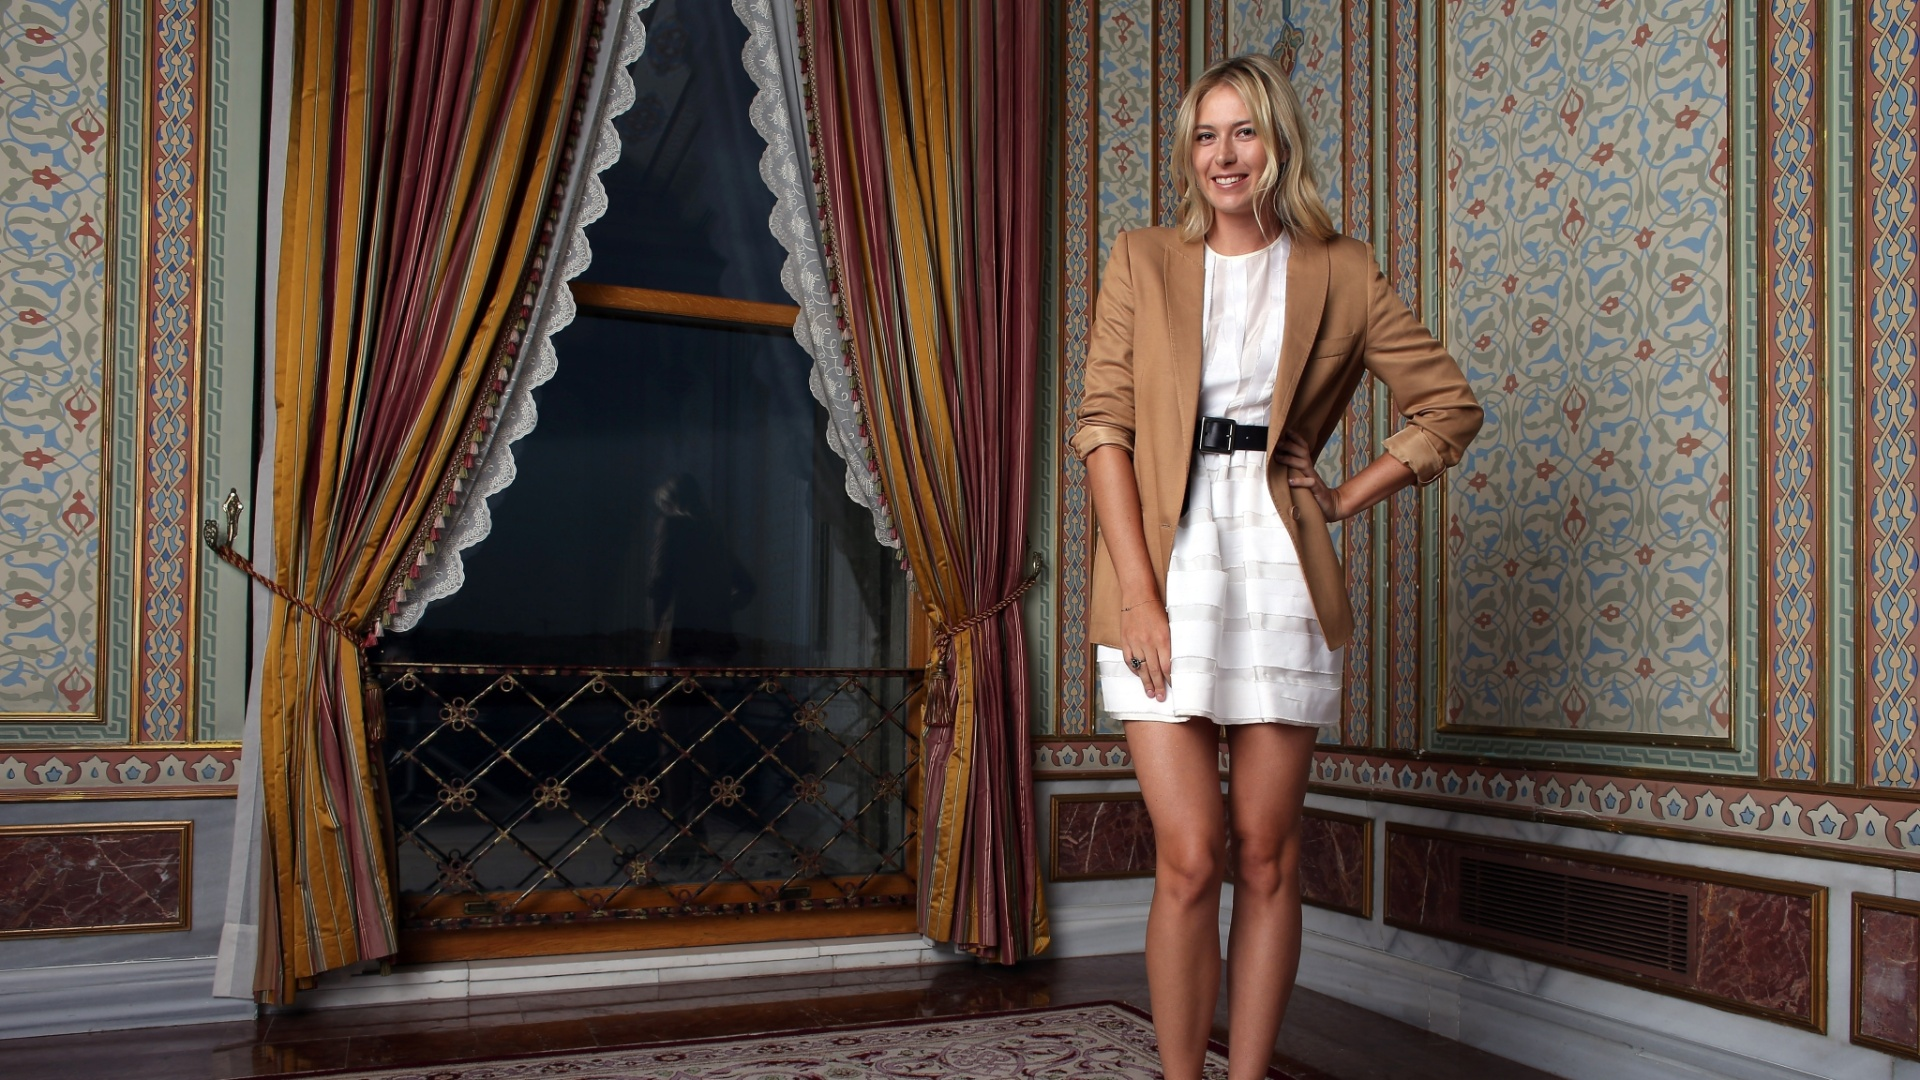 Russa Maria Sharapova mostra seu estilo com trajes de gala em Istambul